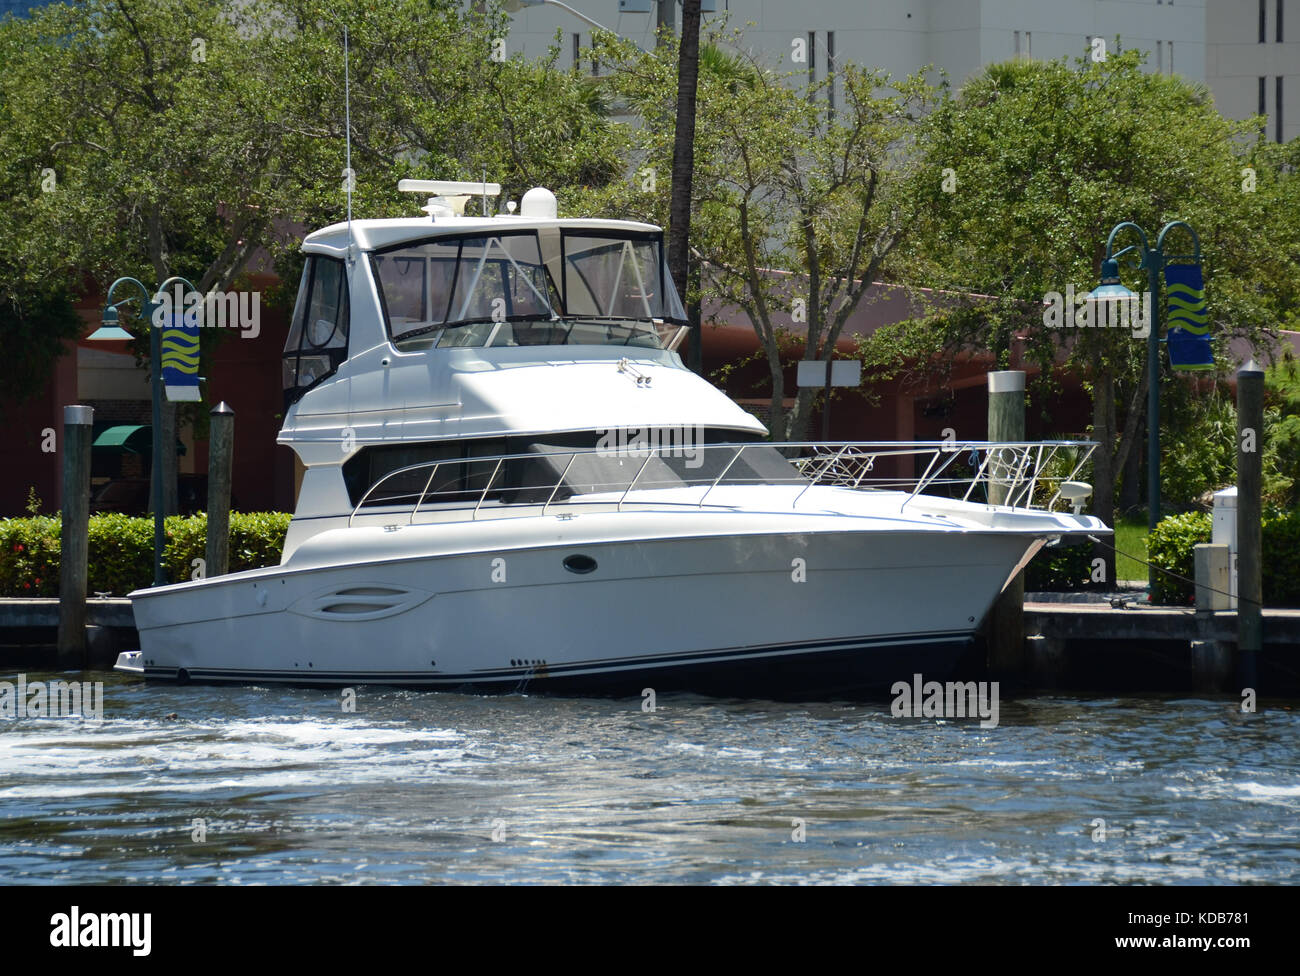 Private yacht on a South Florida waterway - Stock Image